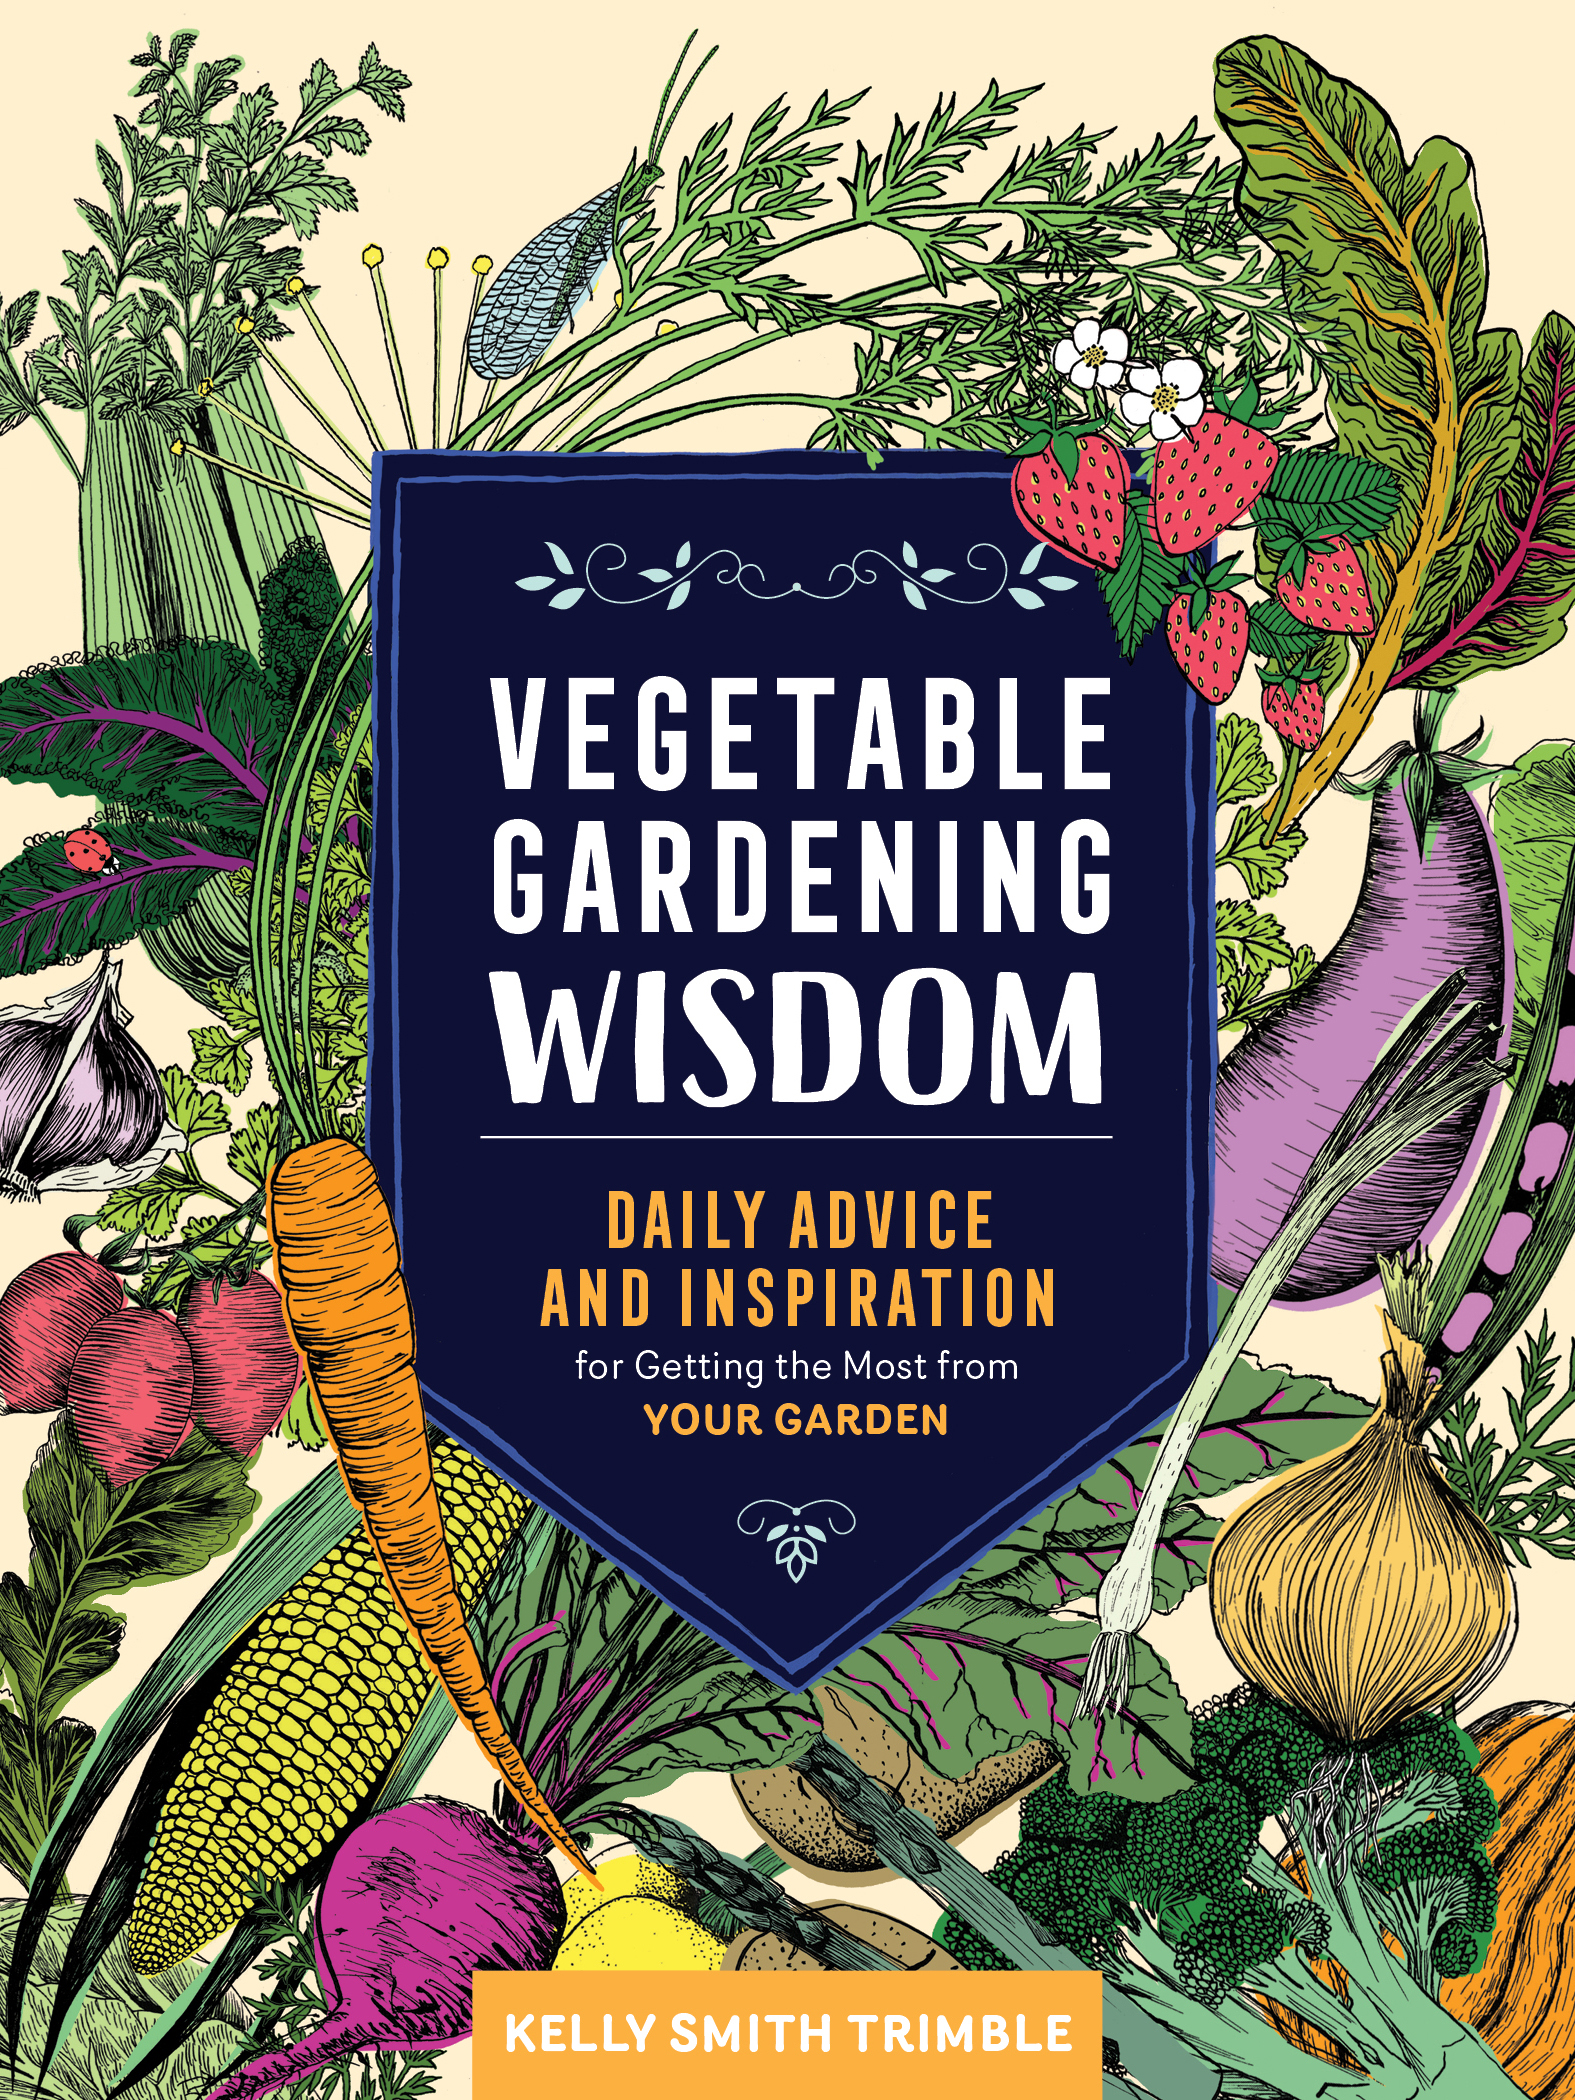 Vegetable Gardening Wisdom Daily Advice and Inspiration for Getting the Most from Your Garden - Kelly Smith Trimble